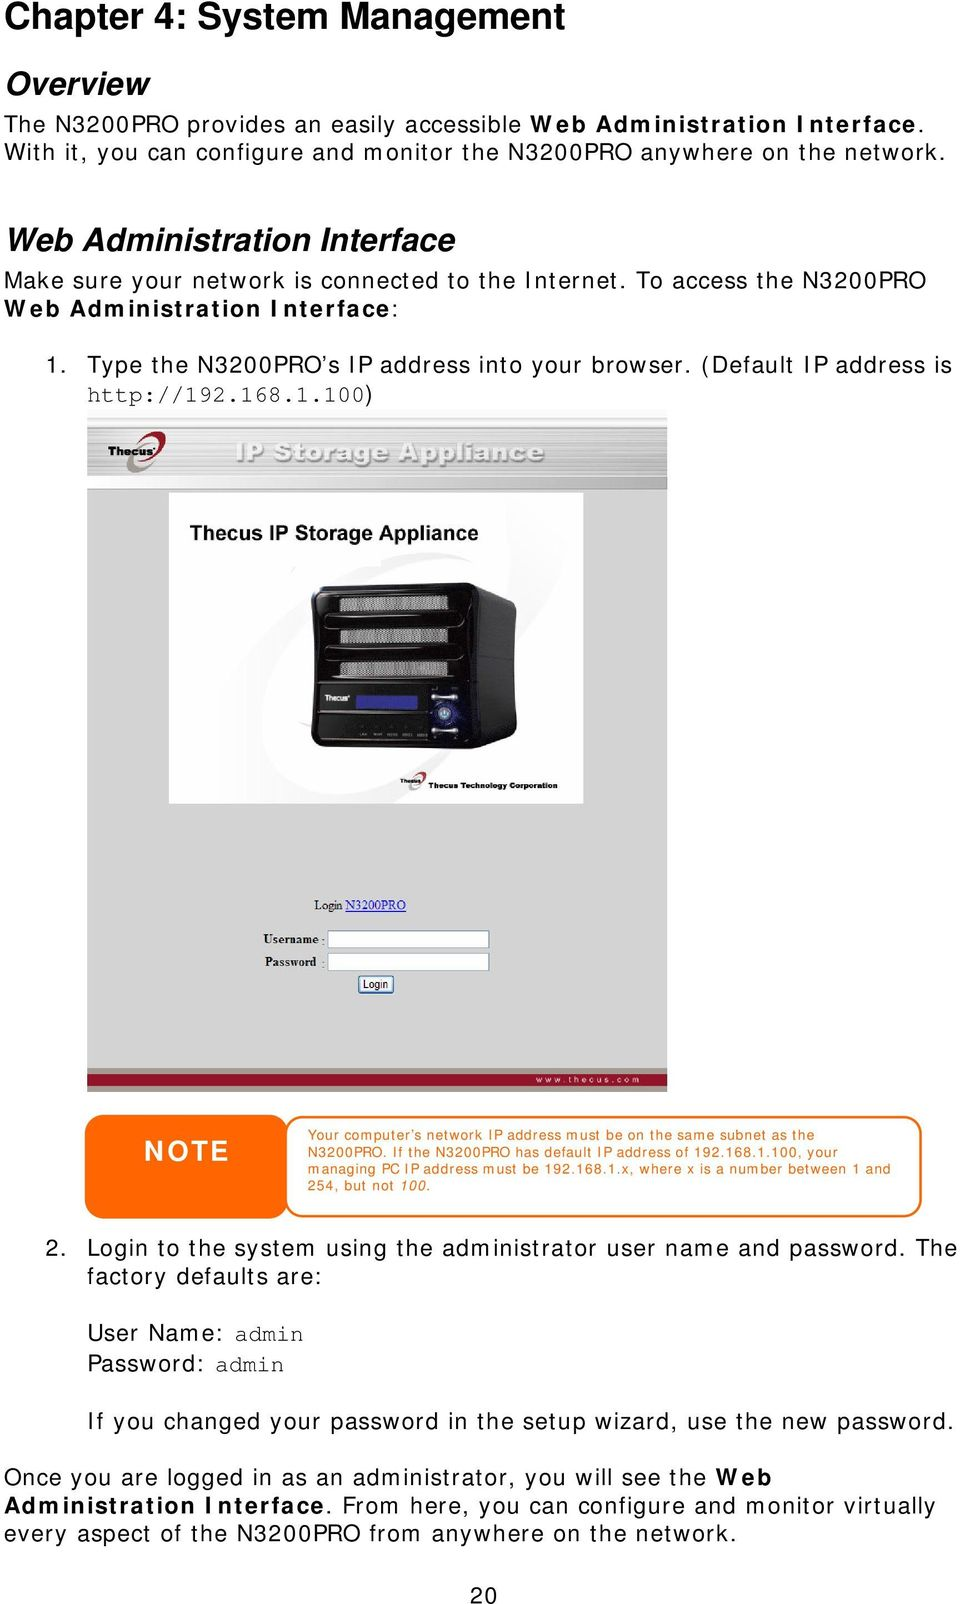 (Default IP address is http://192.168.1.100) NOTE Your computer s network IP address must be on the same subnet as the N3200PRO. If the N3200PRO has default IP address of 192.168.1.100, your managing PC IP address must be 192.